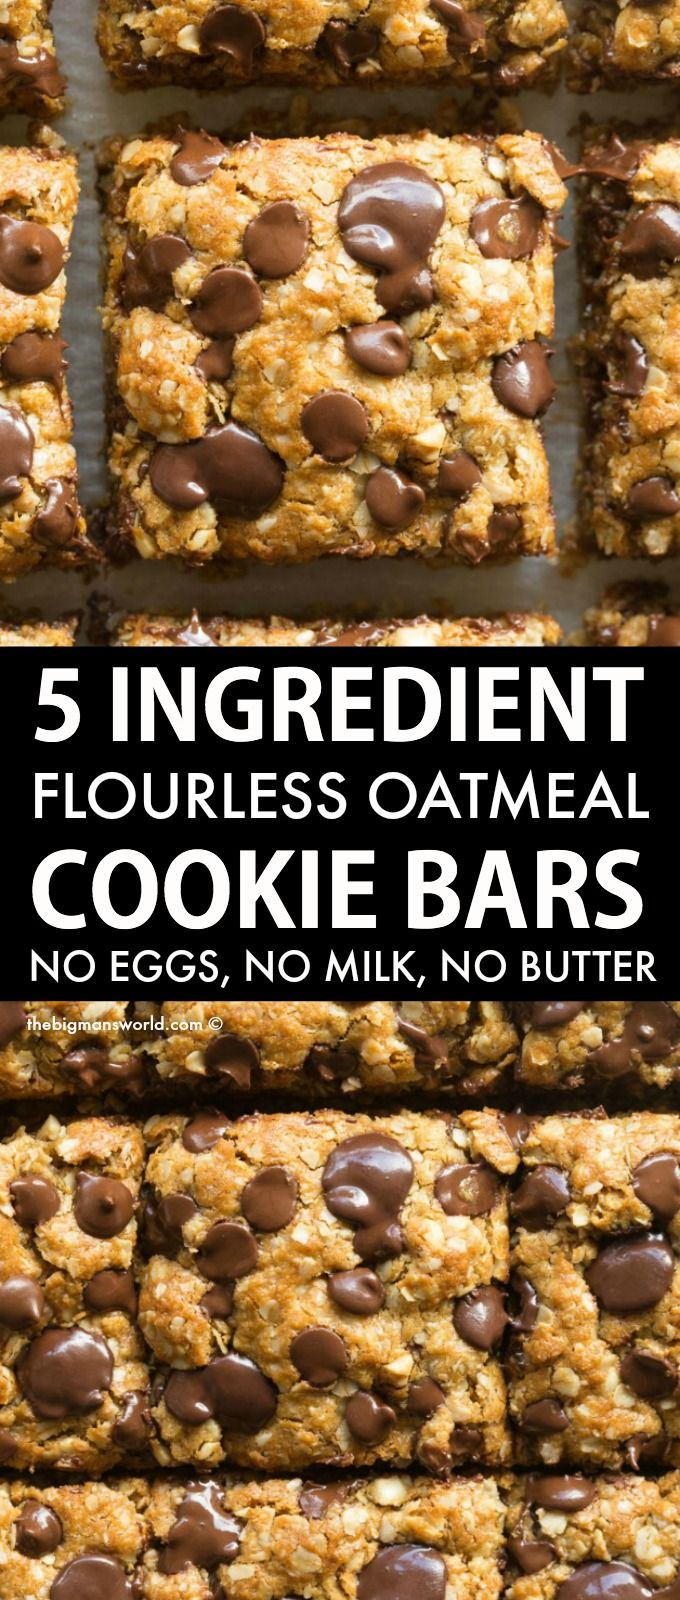 Flourless Vegan Gluten-Free Oatmeal Cookie Bars made with just 5 ingredients! Soft, chewy and gooey in one, they require just one bowl and 12 minutes to make! No butter, no oil, and no eggs!